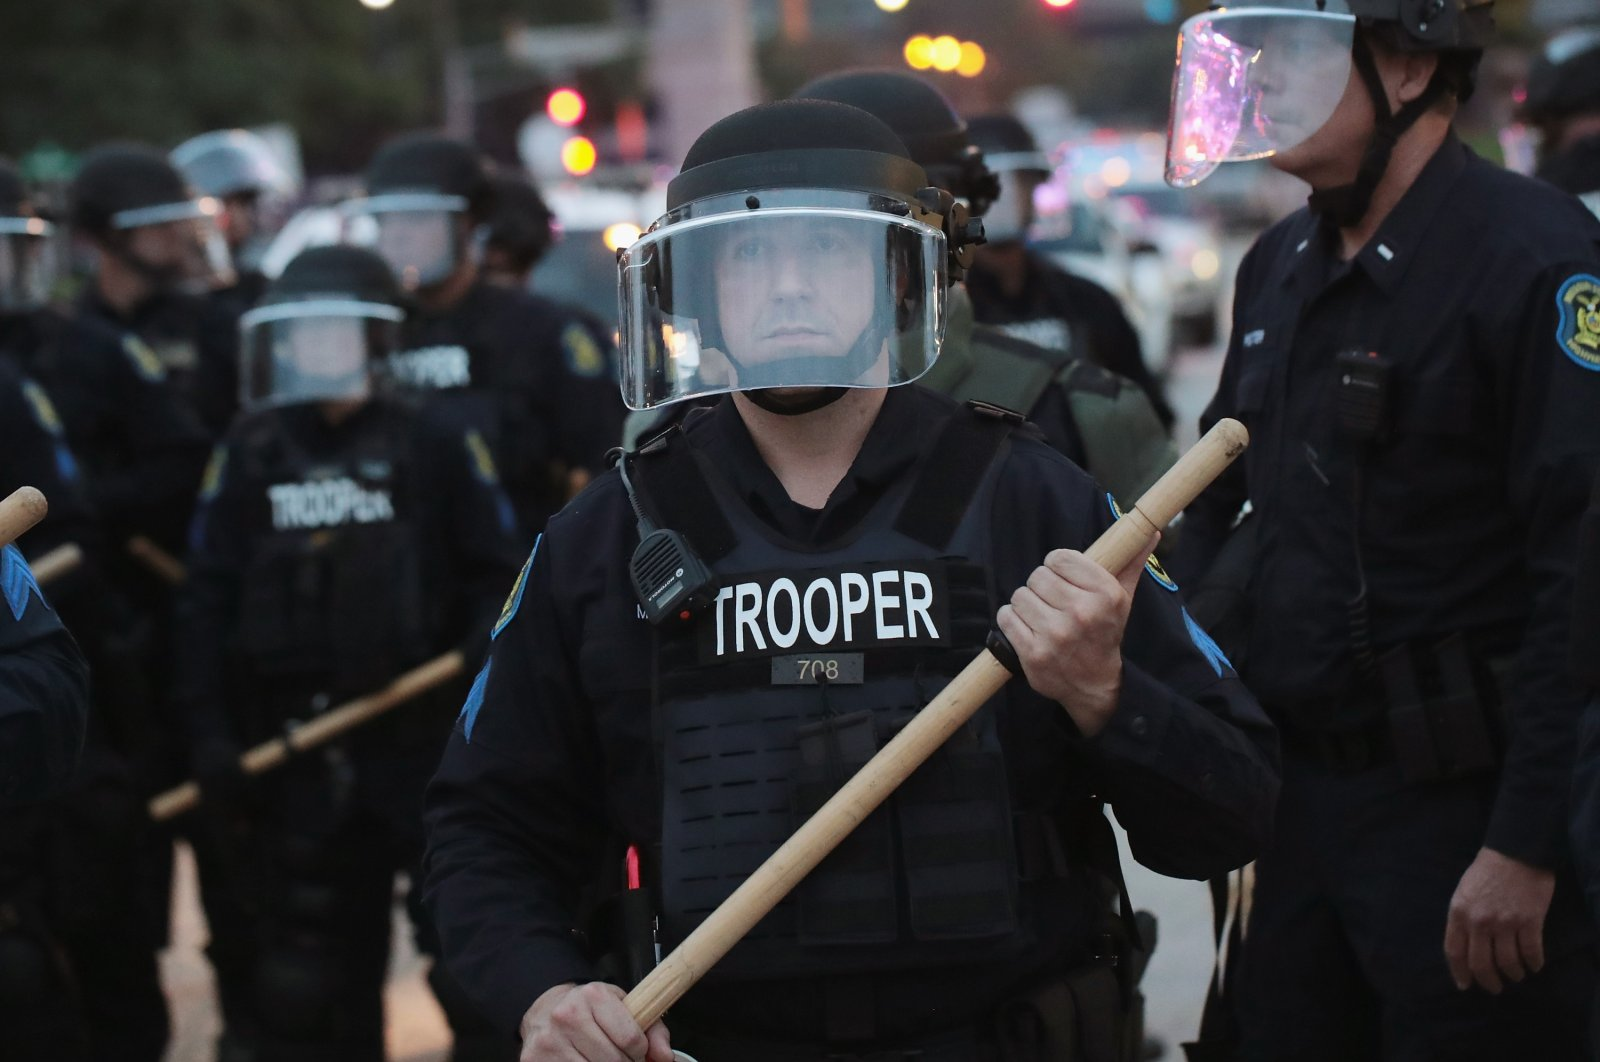 Police respond to a demonstration protesting the acquittal of former St. Louis police officer Jason Stockley, in St. Louis, Missouri, U.S., Sept. 17, 2017. (Getty Images)